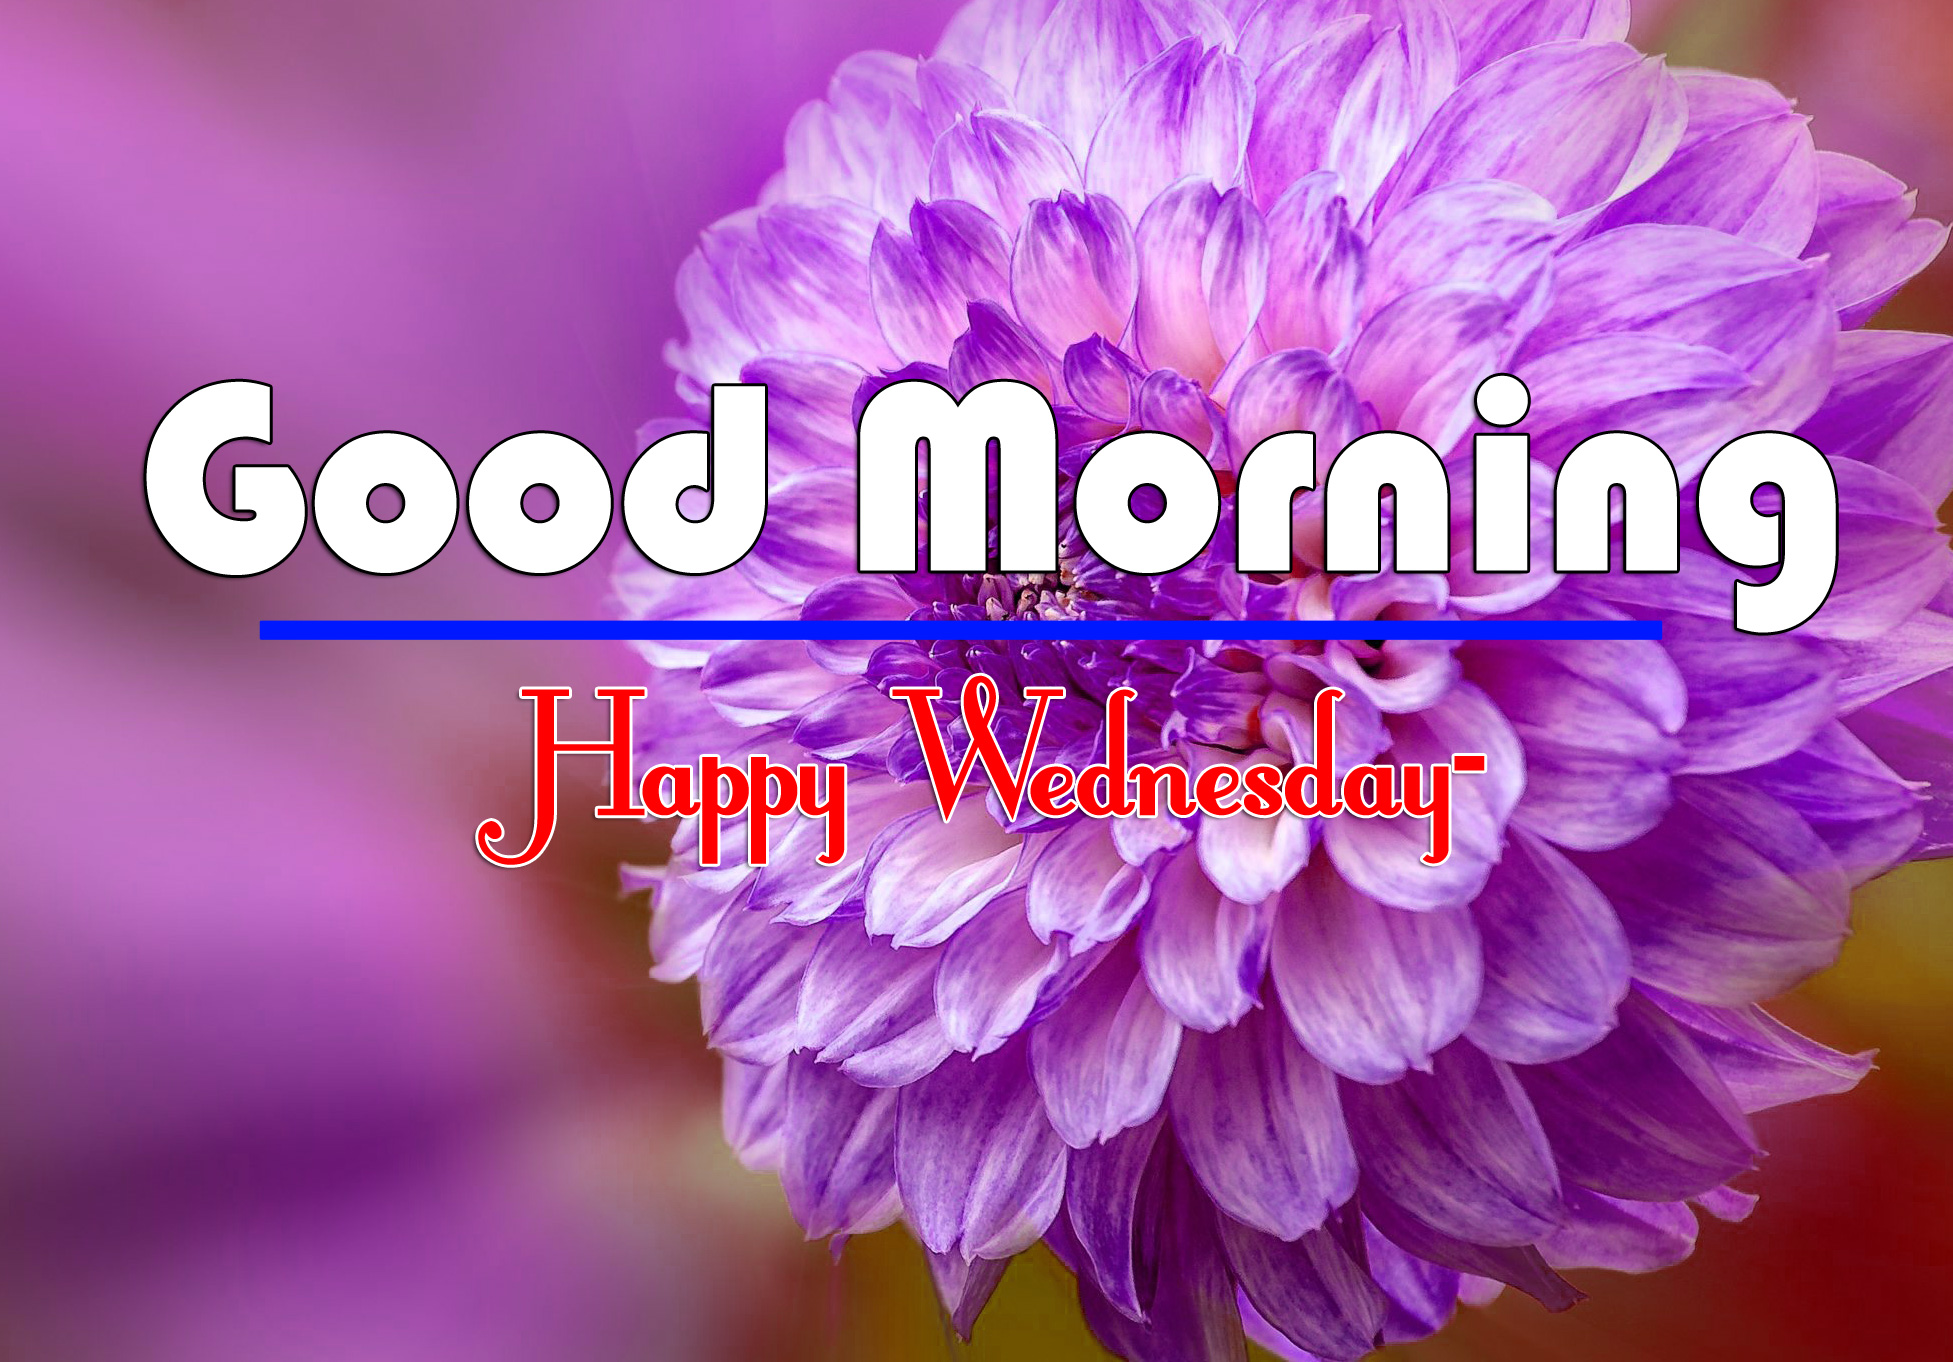 Good Morning Wednesday Images 1